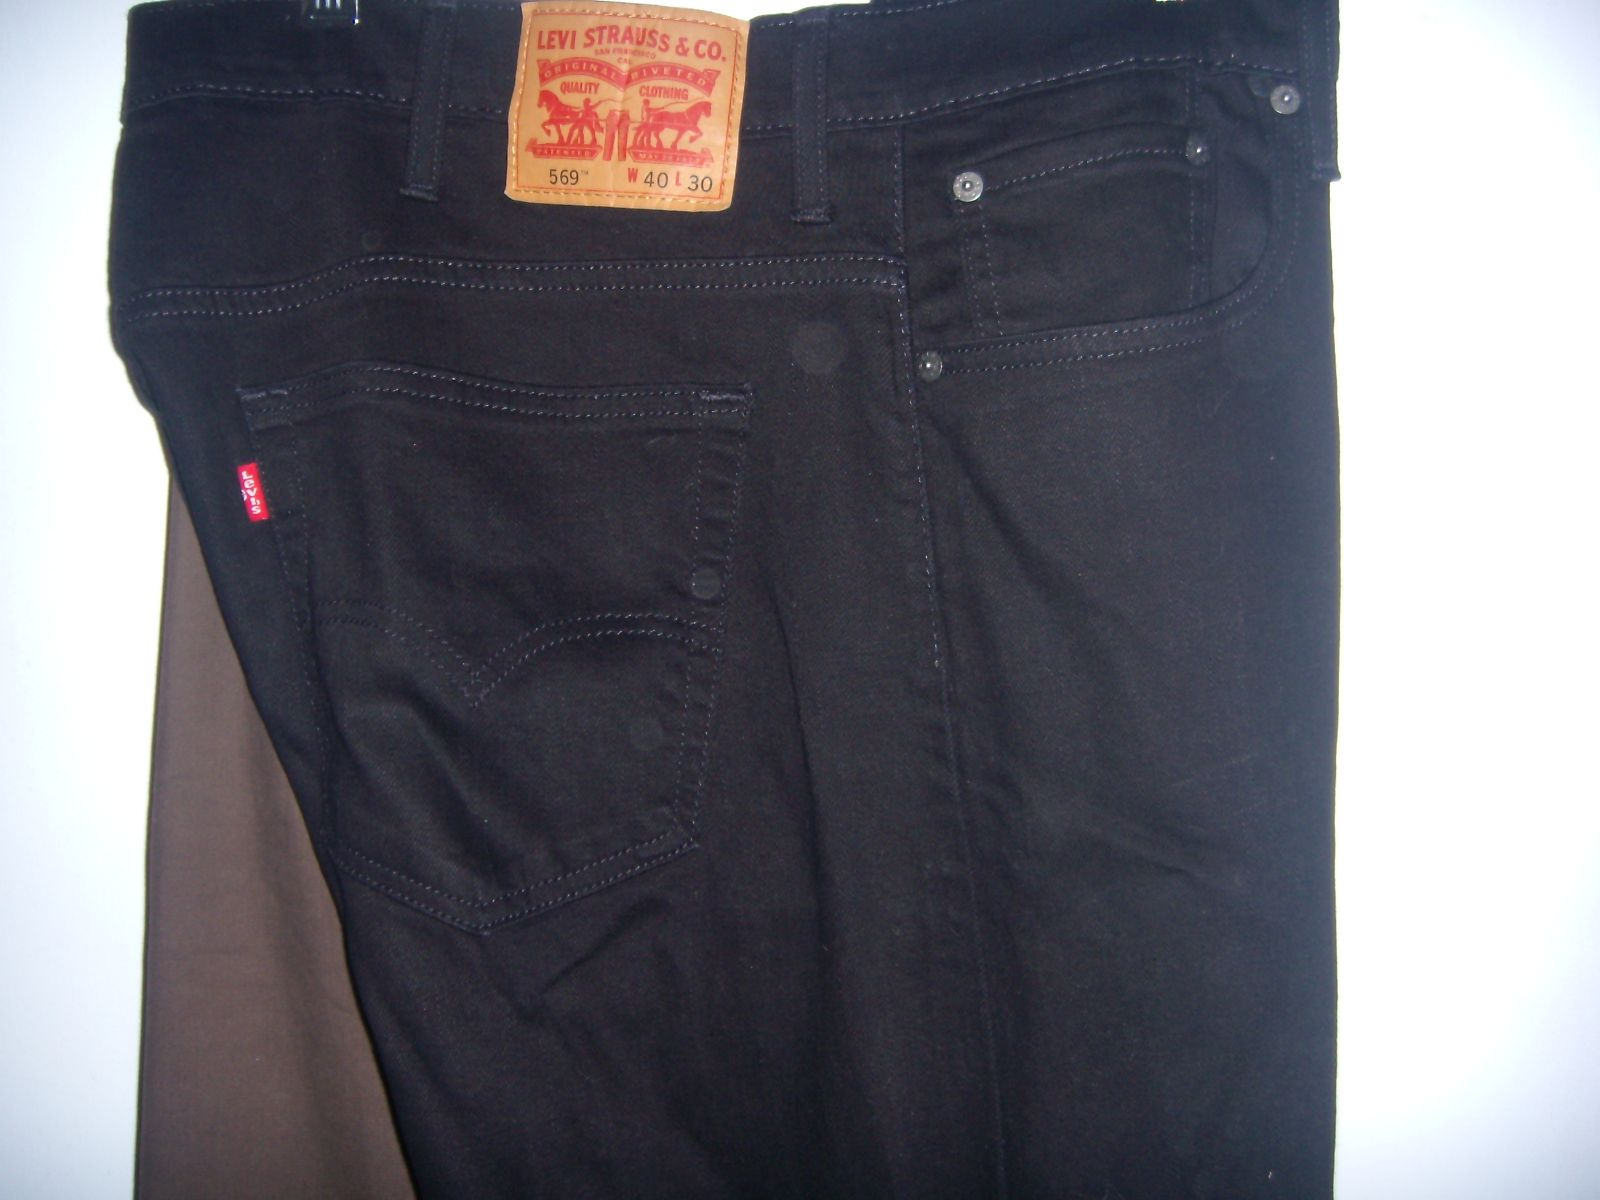 Mens Levi Strauss & Co. Jeans